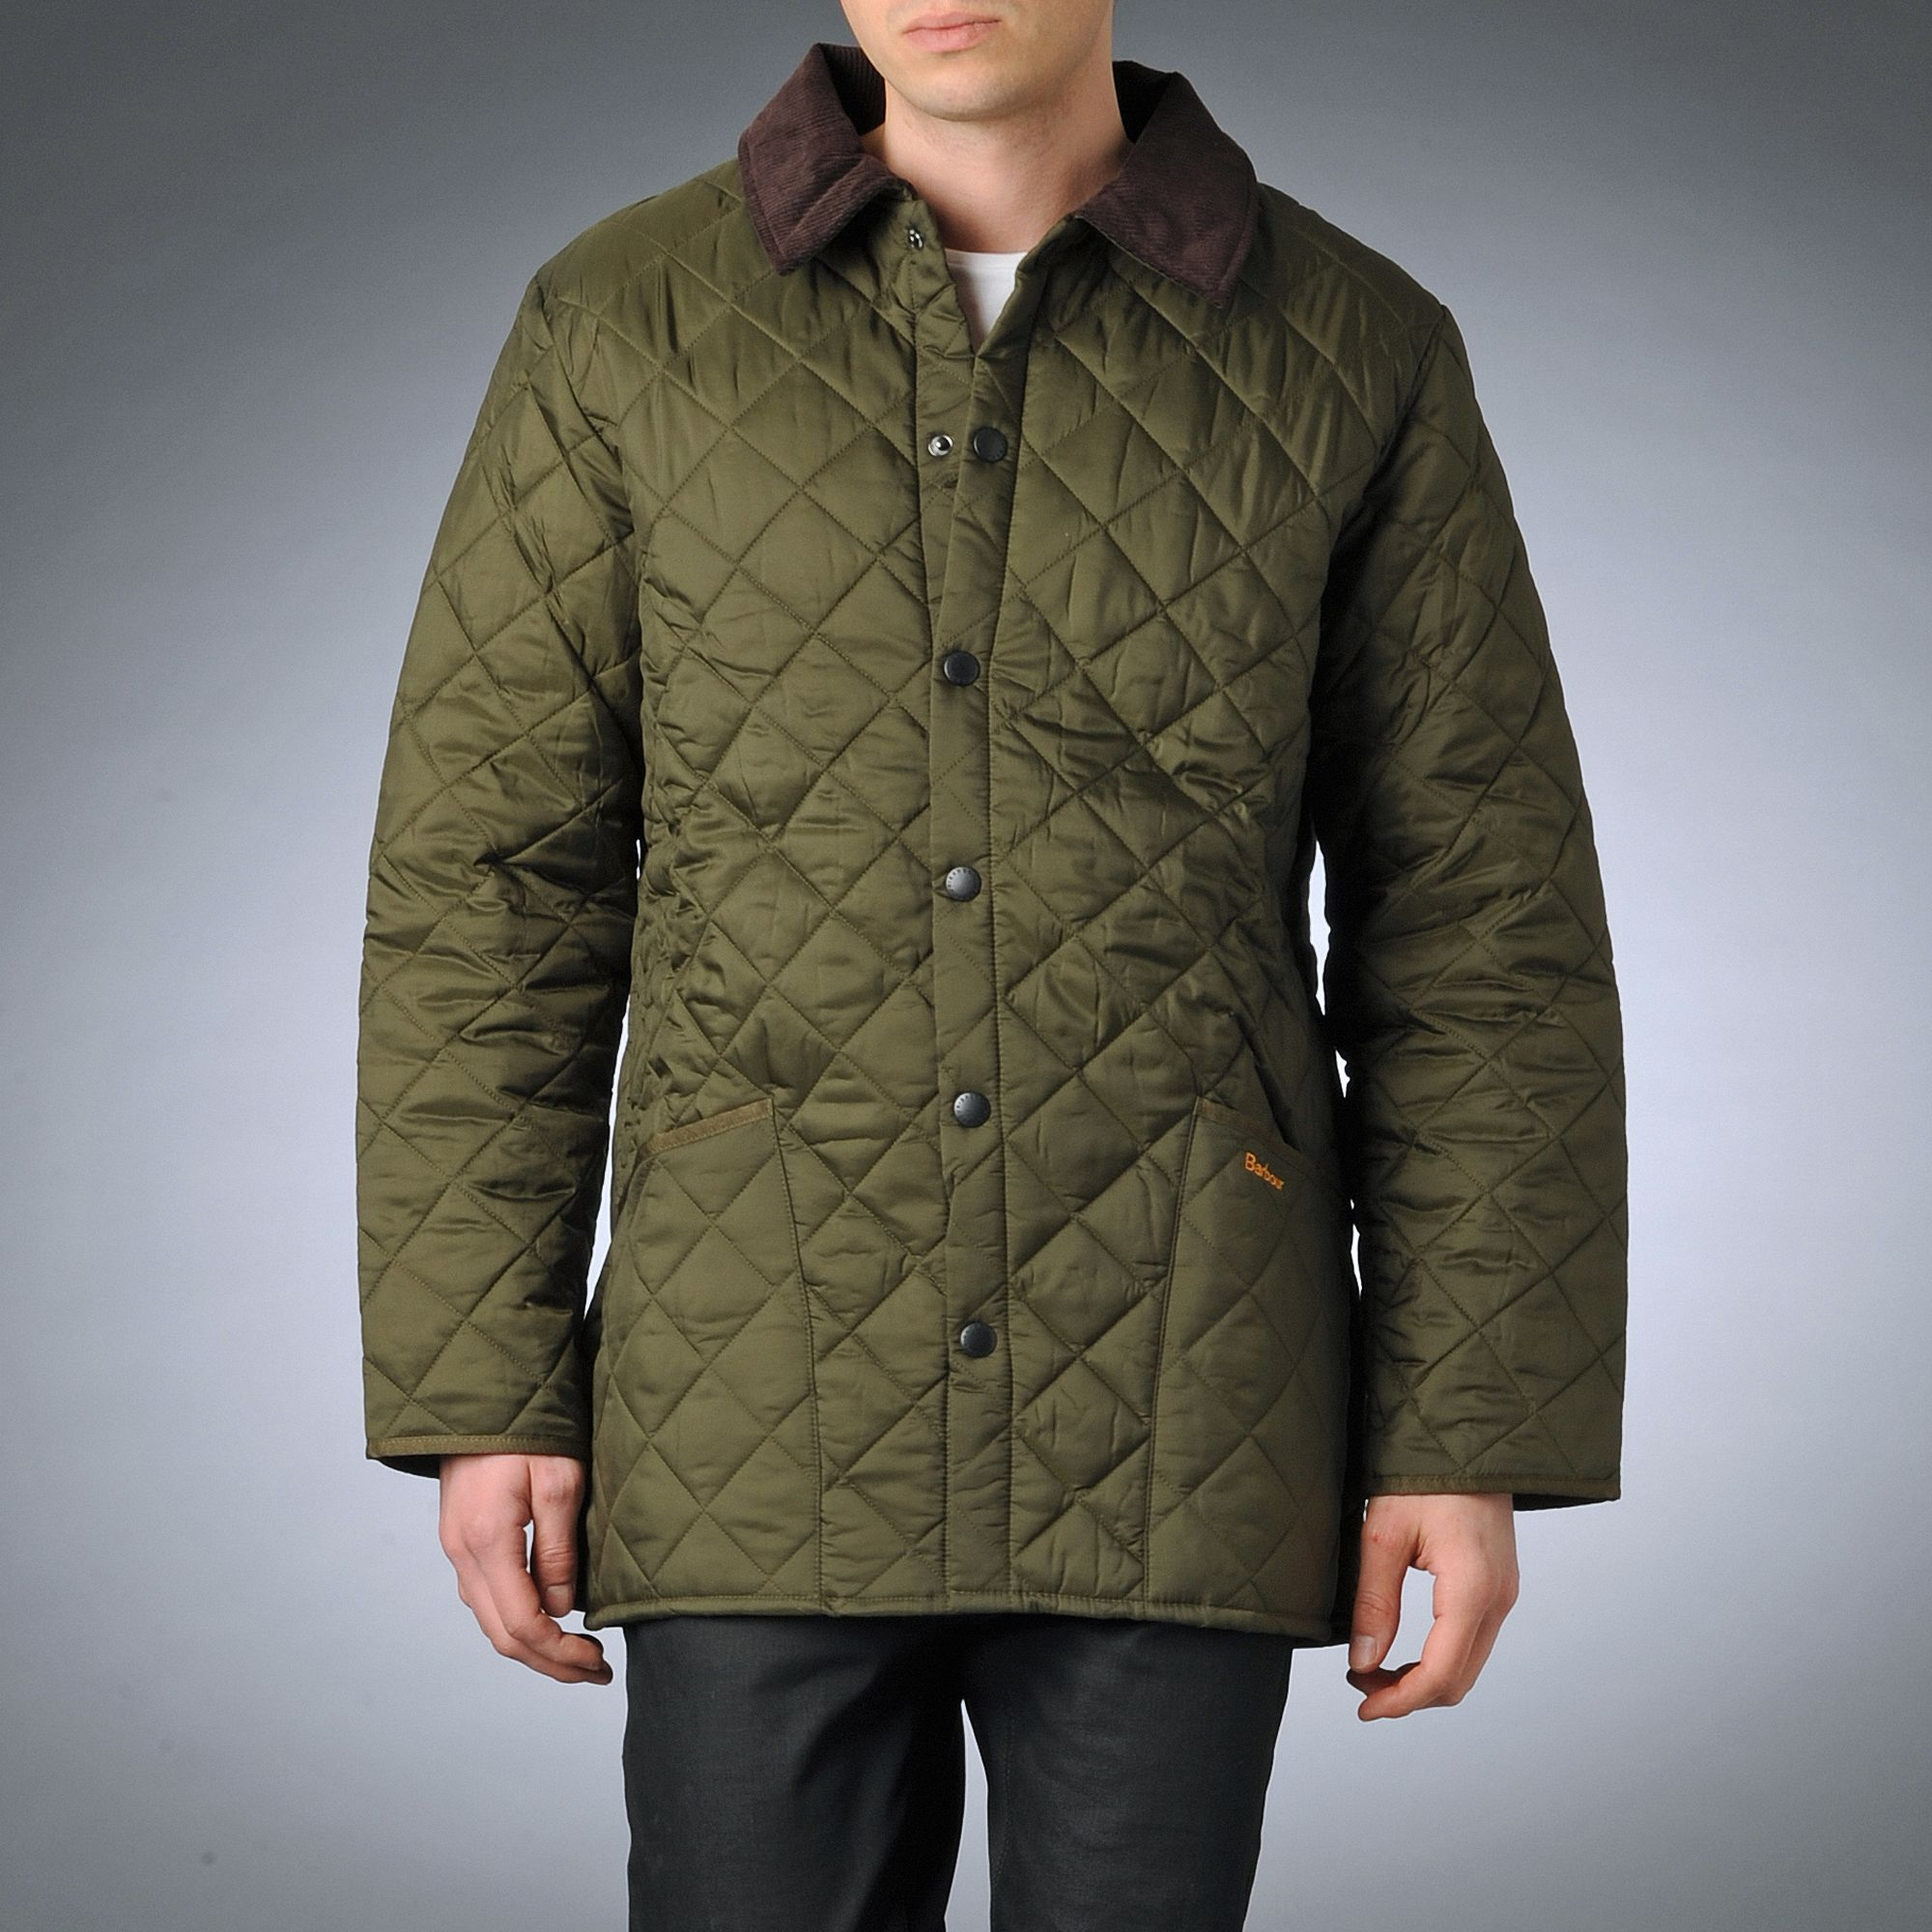 clothing quilt men mens quilted image jackets coats bowden barbour jacket